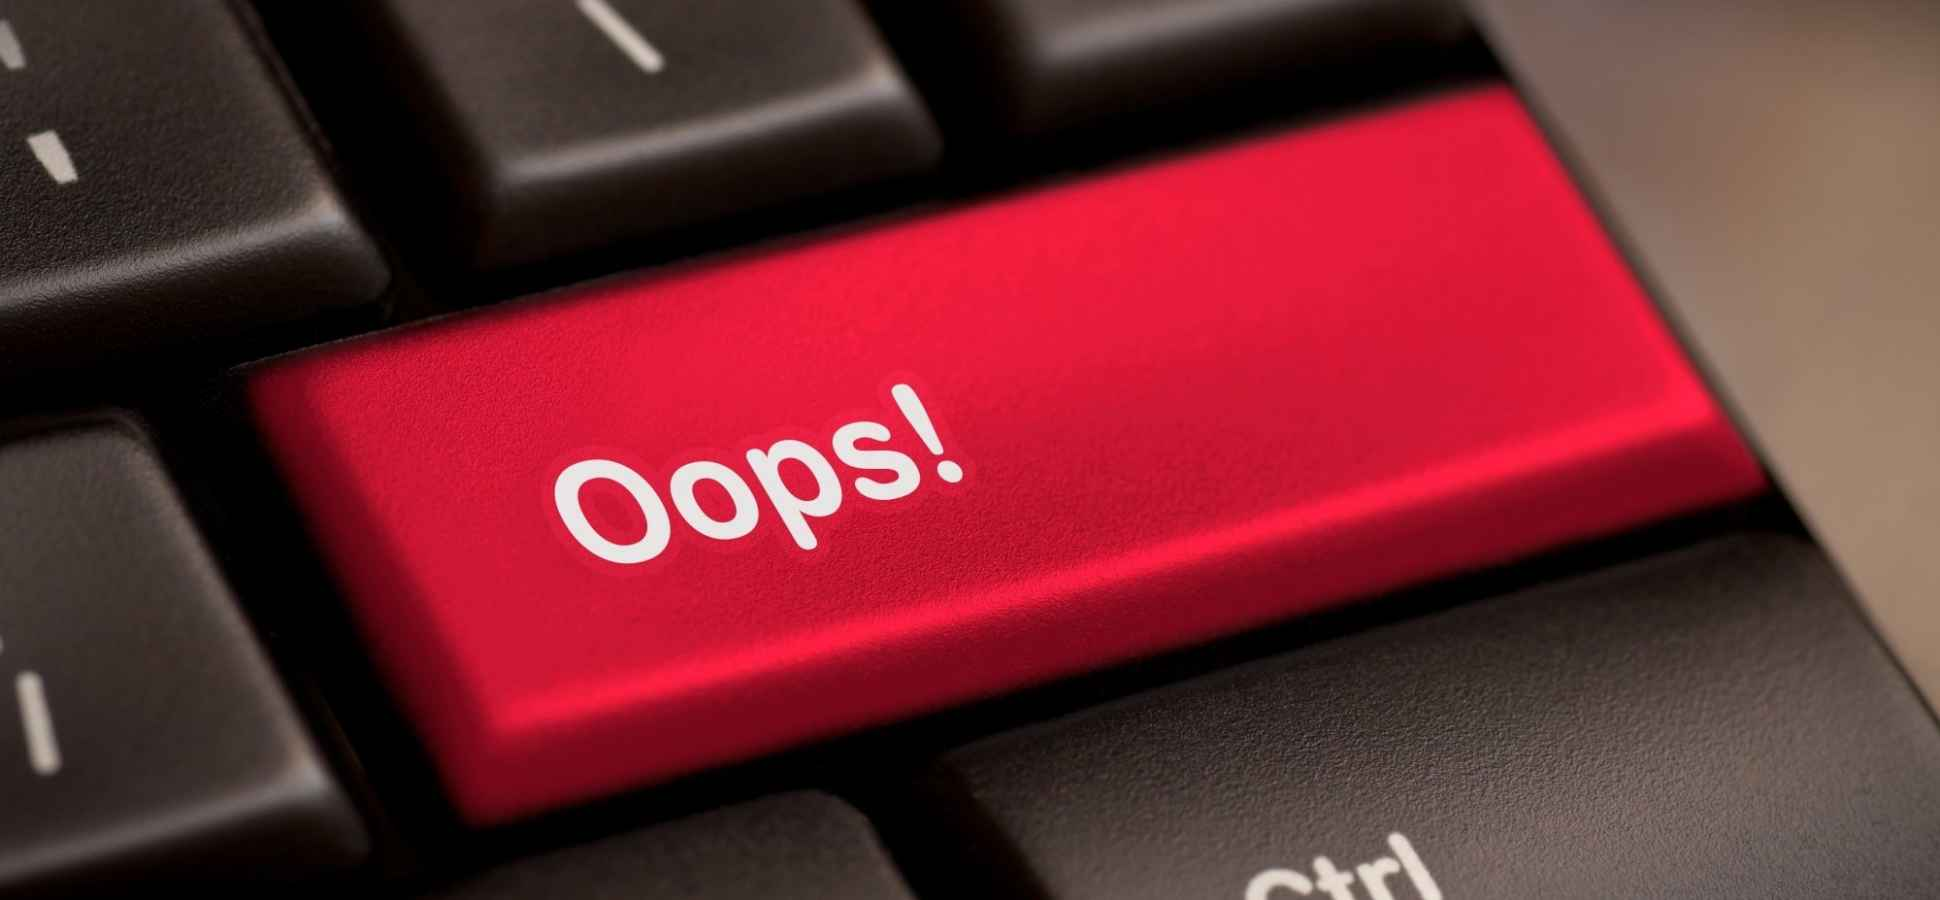 19 Common Grammar and Usage Mistakes That Drive People Crazy